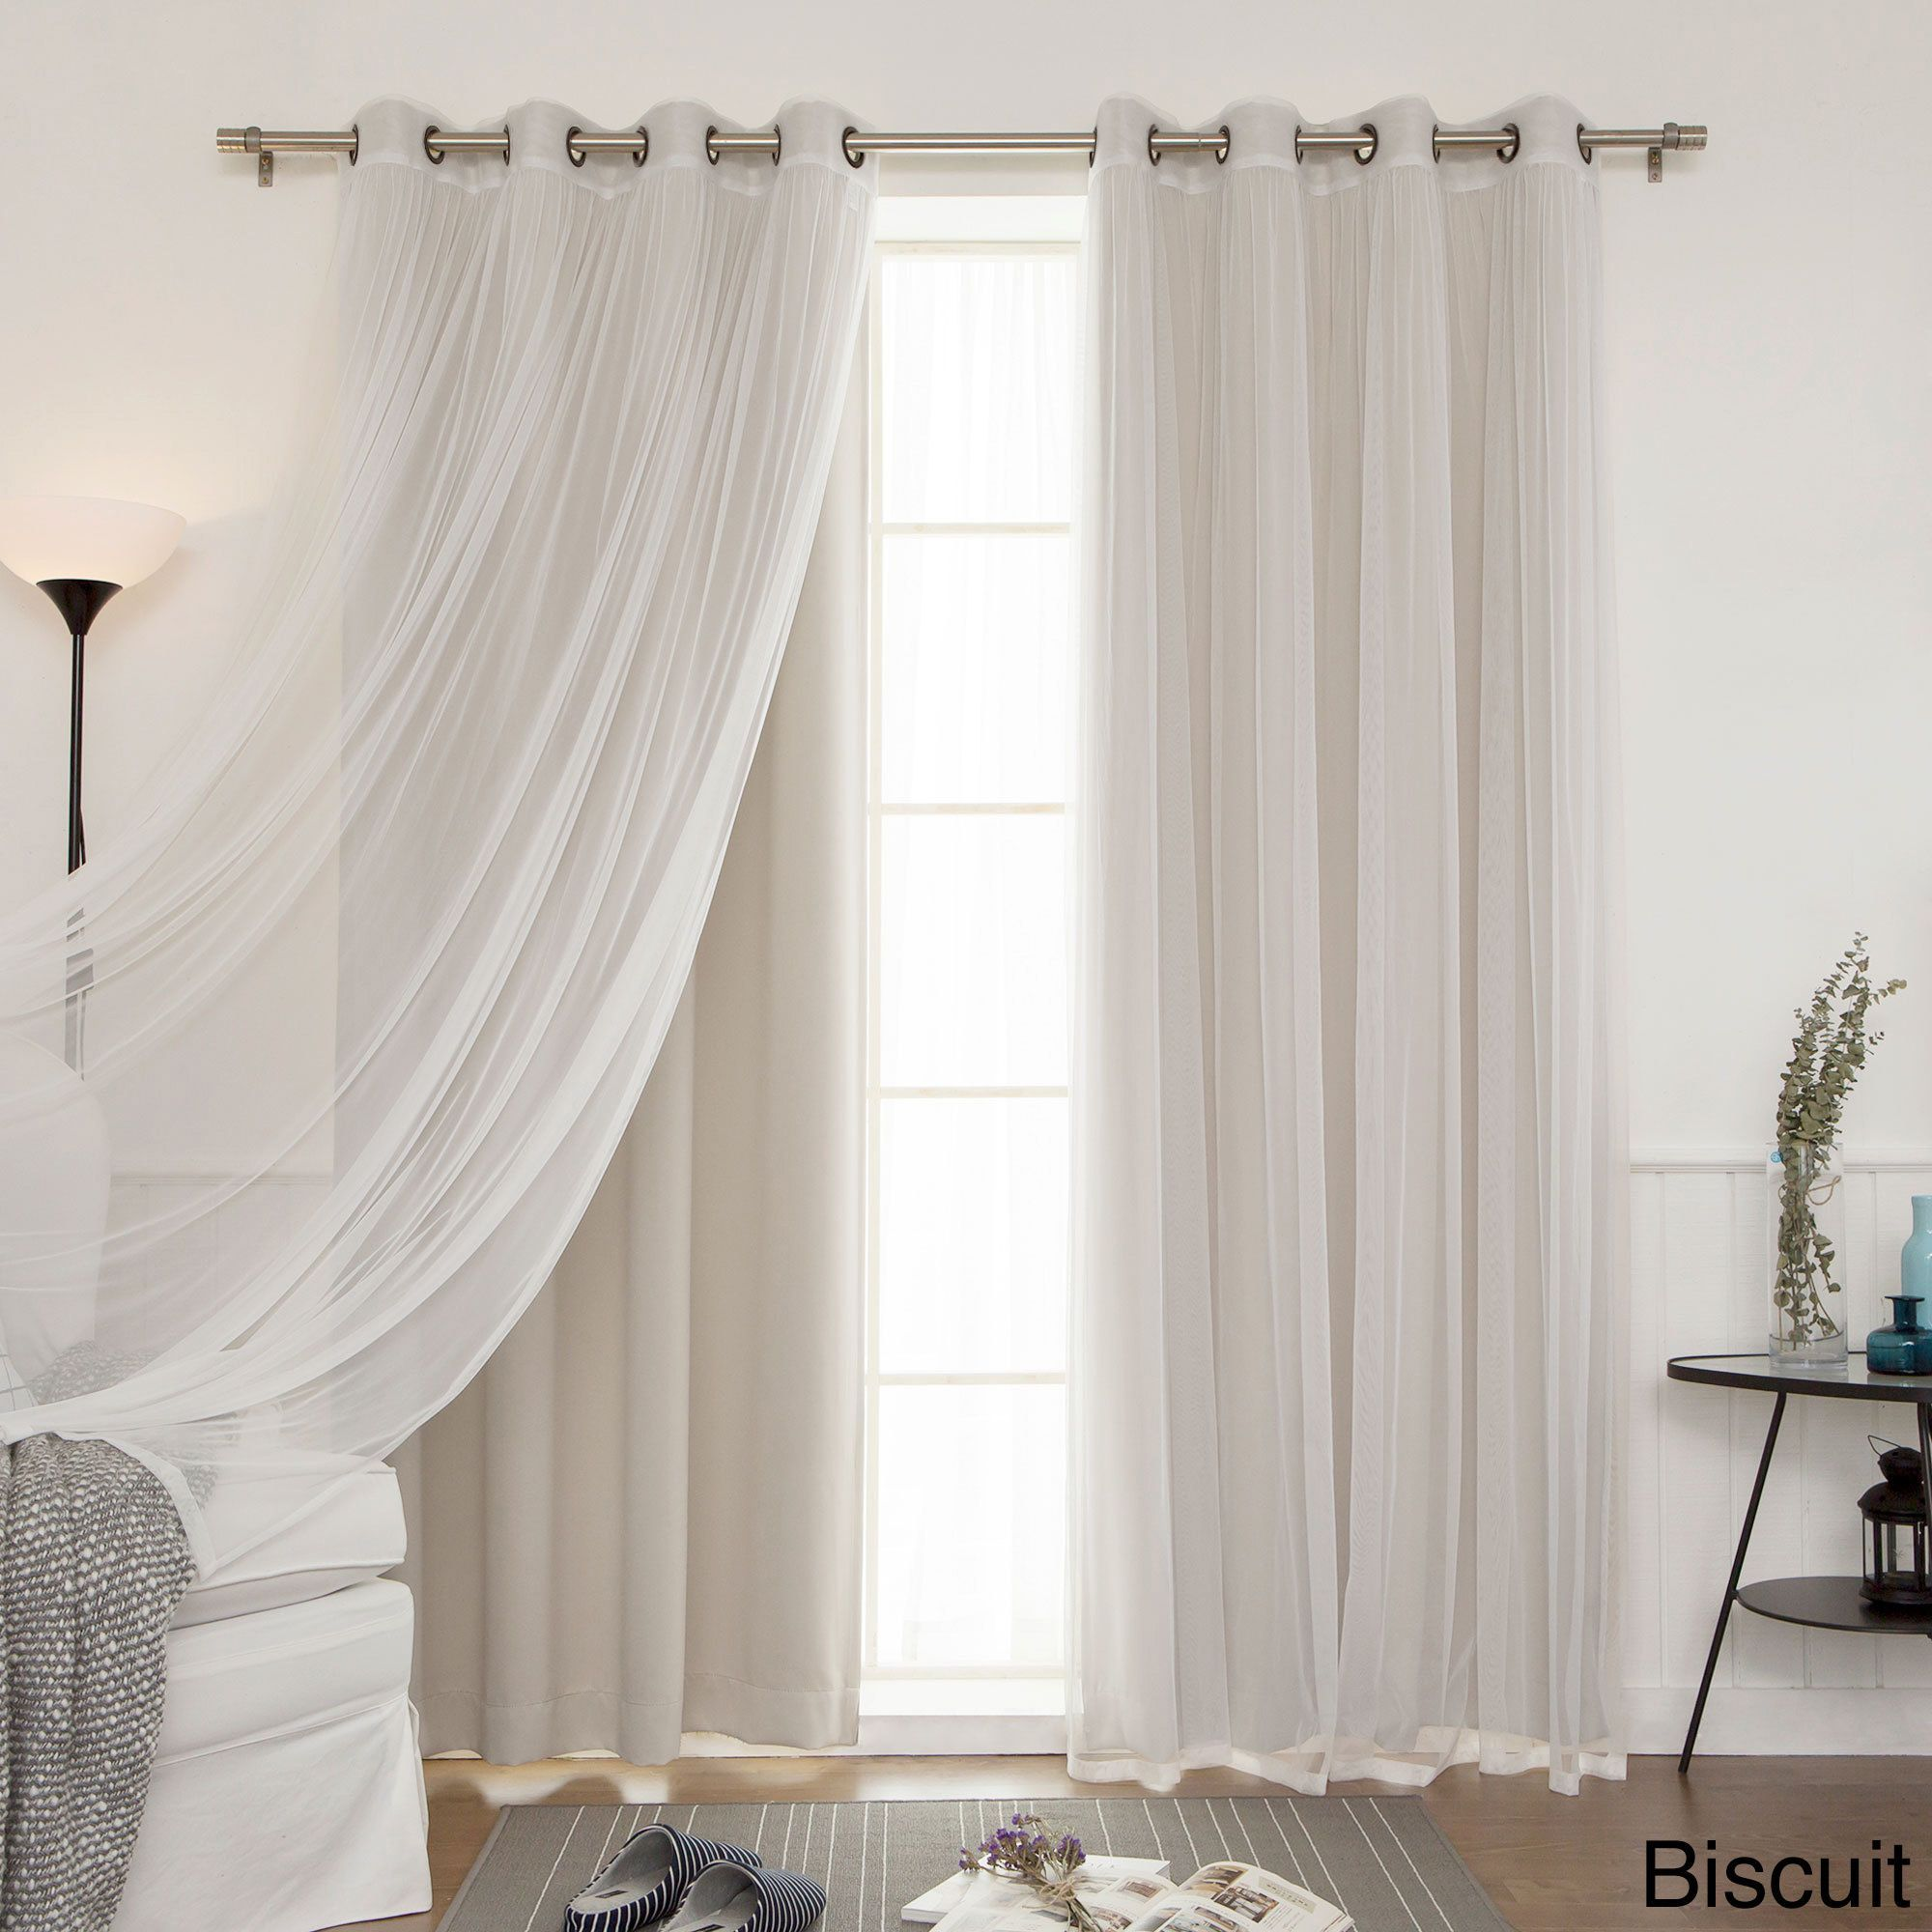 Aurora Home Mix and Match Blackout Blackout Curtains Panel